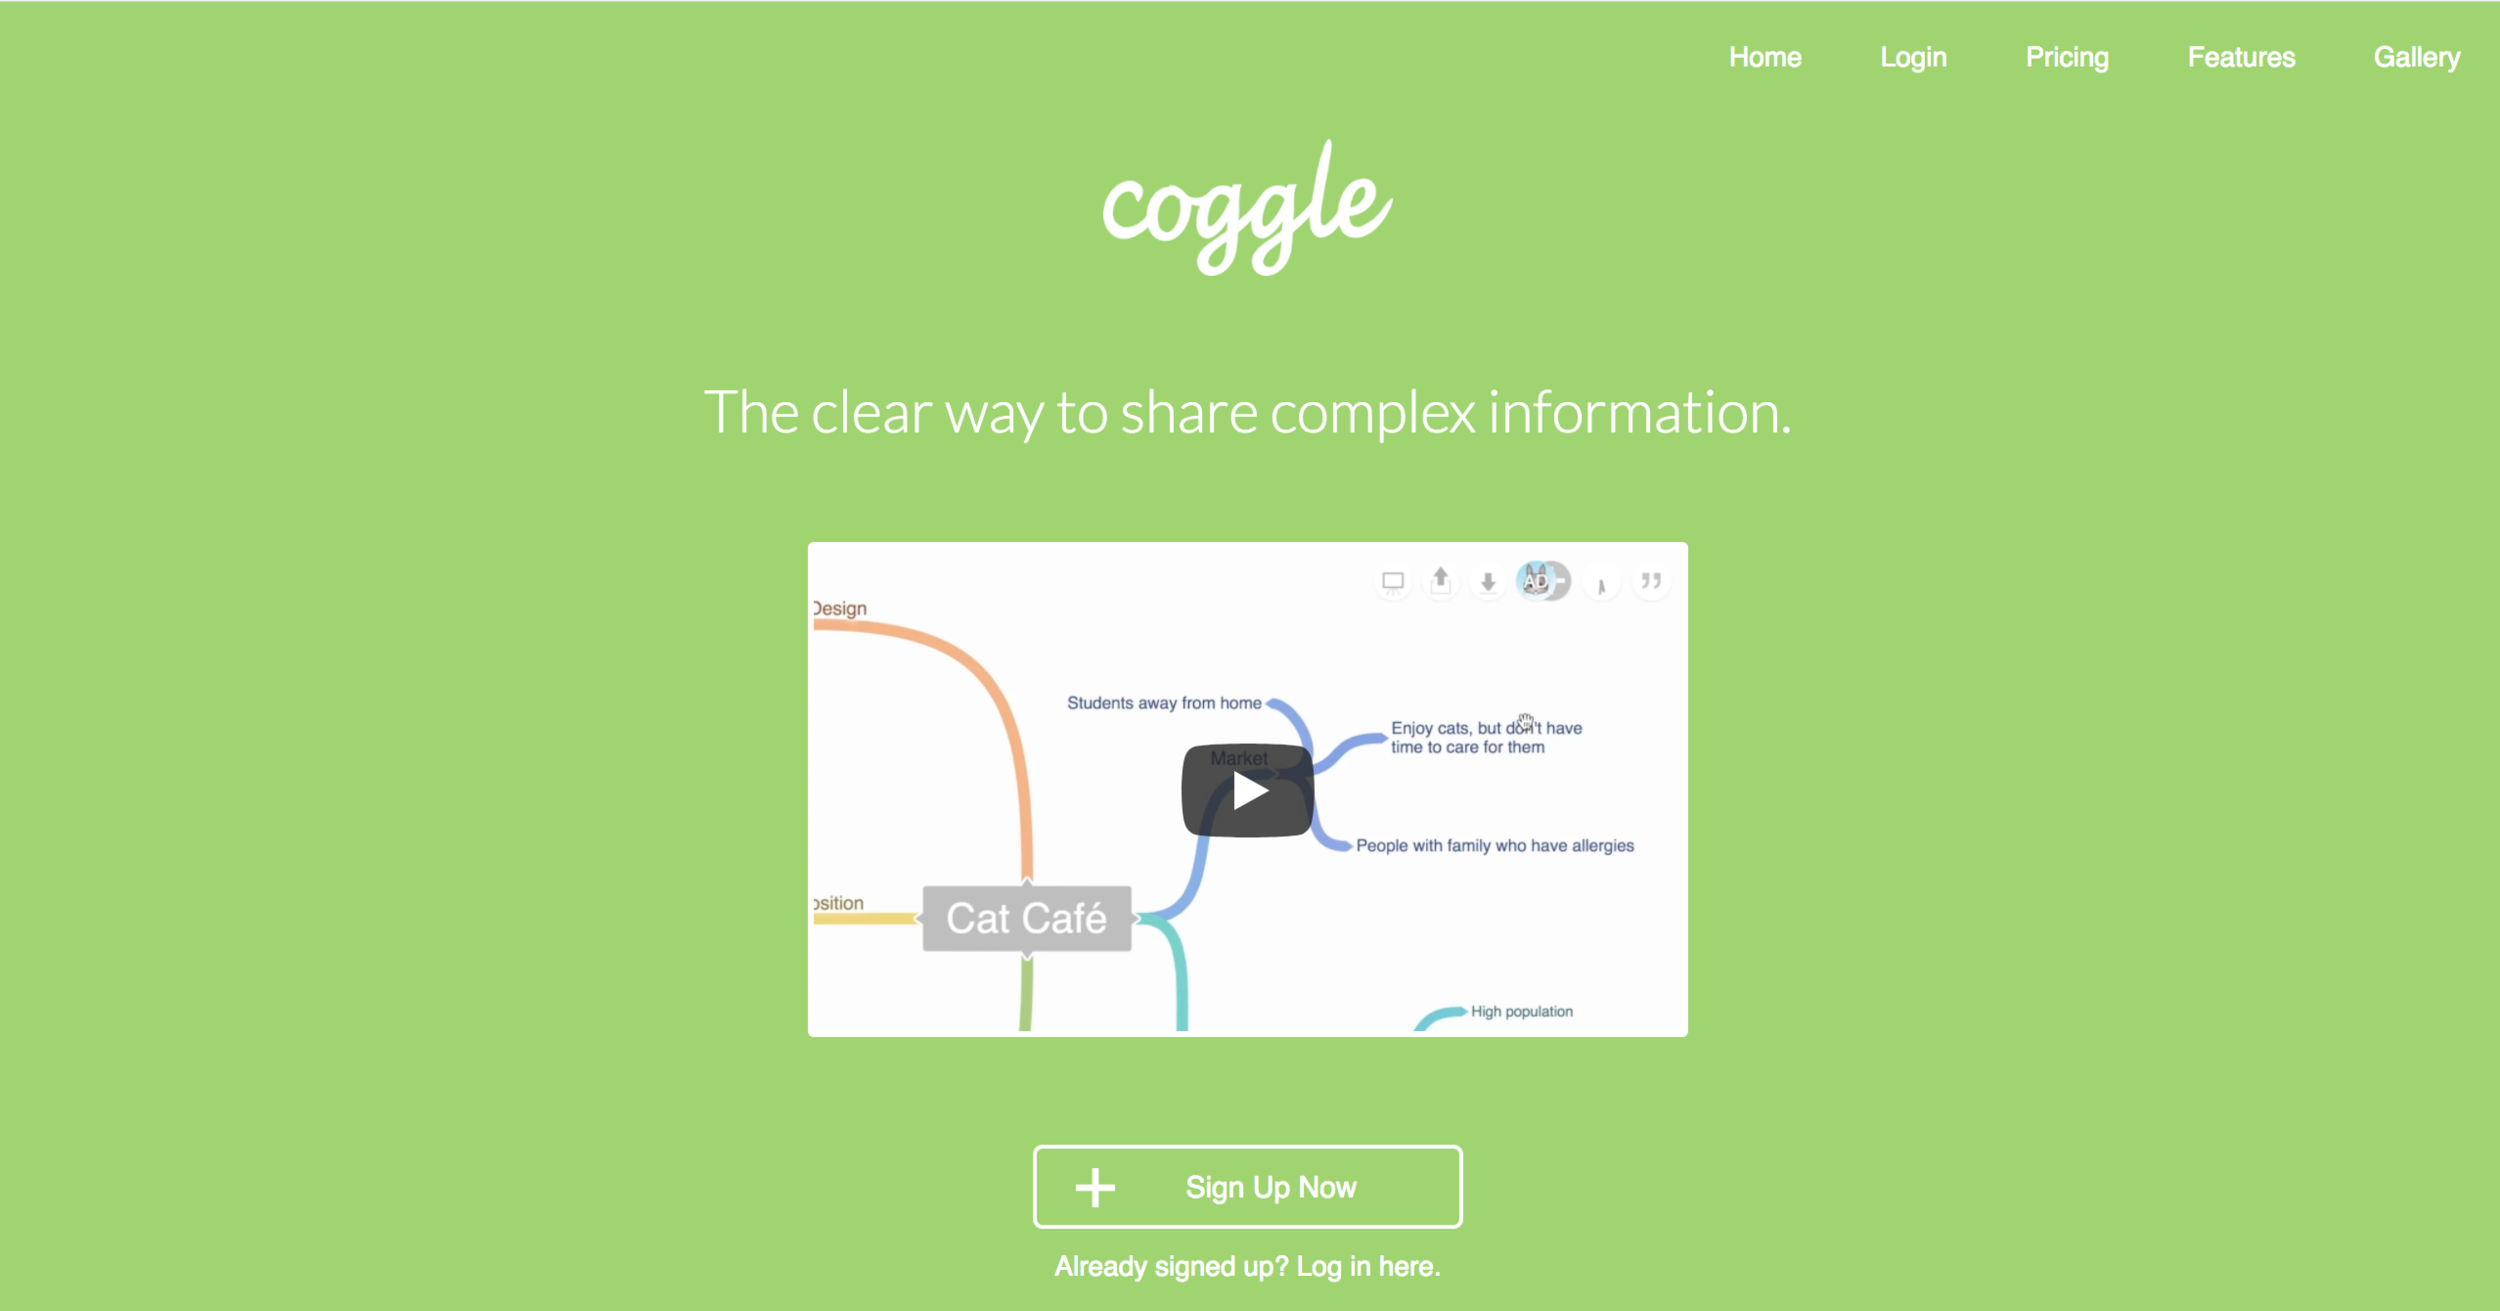 Coggle - I find Coggle to be a straightforward in the best ways possible. It gives structure to mindmaps, which is a helpful feature for students who want more support as they develop ideas. The website also allows for collaborative editing, which makes it easy for students to work on different sections of the mindmap at the same time. Students consider Coggle a particularly helpful resource for organizing parts of an essay.